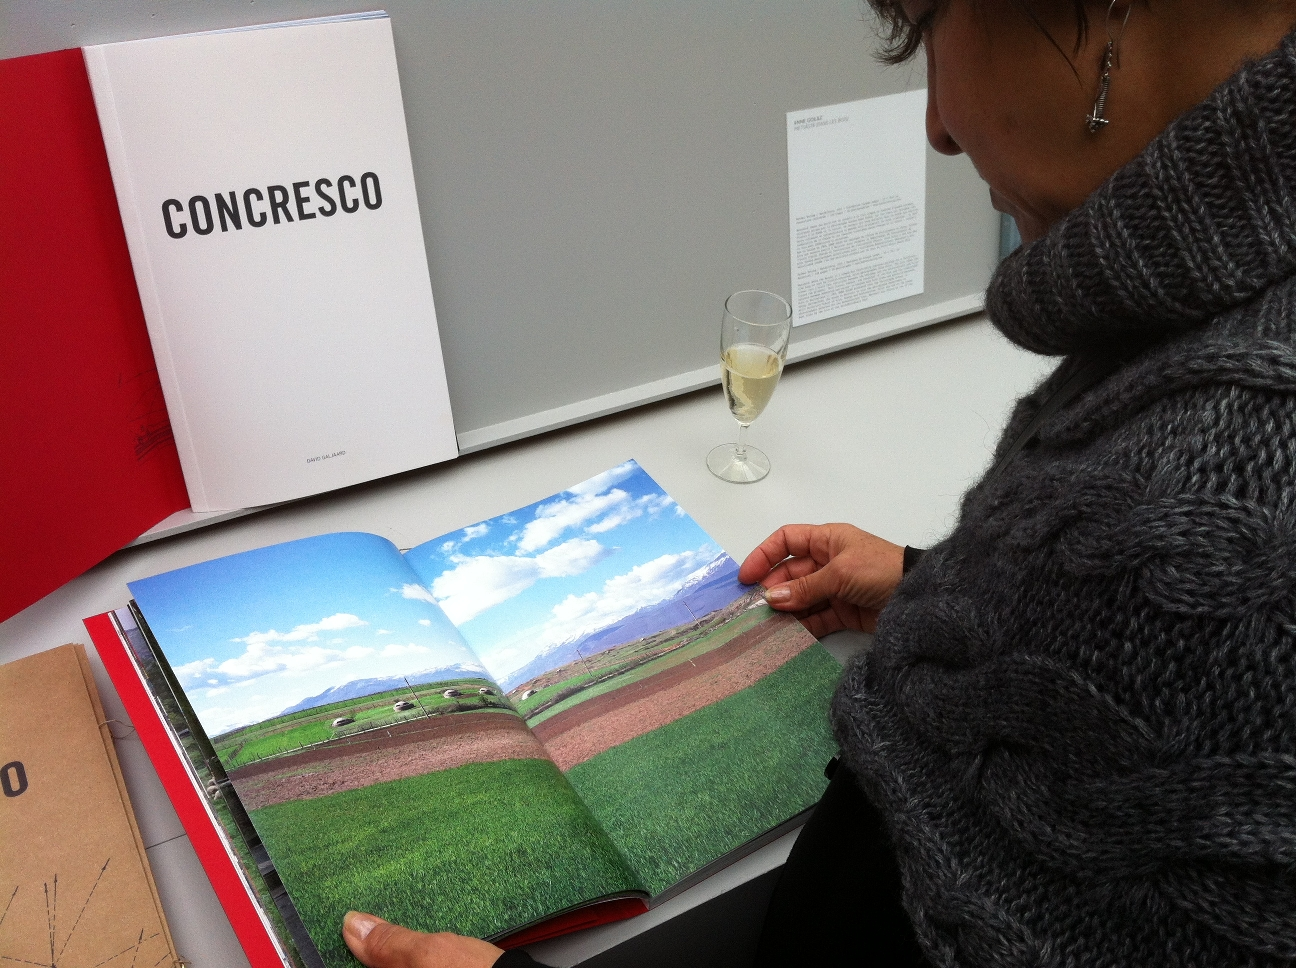 Paris Photo Aperture Foundation Photobook Awards - David Galijaard, Concresco 1